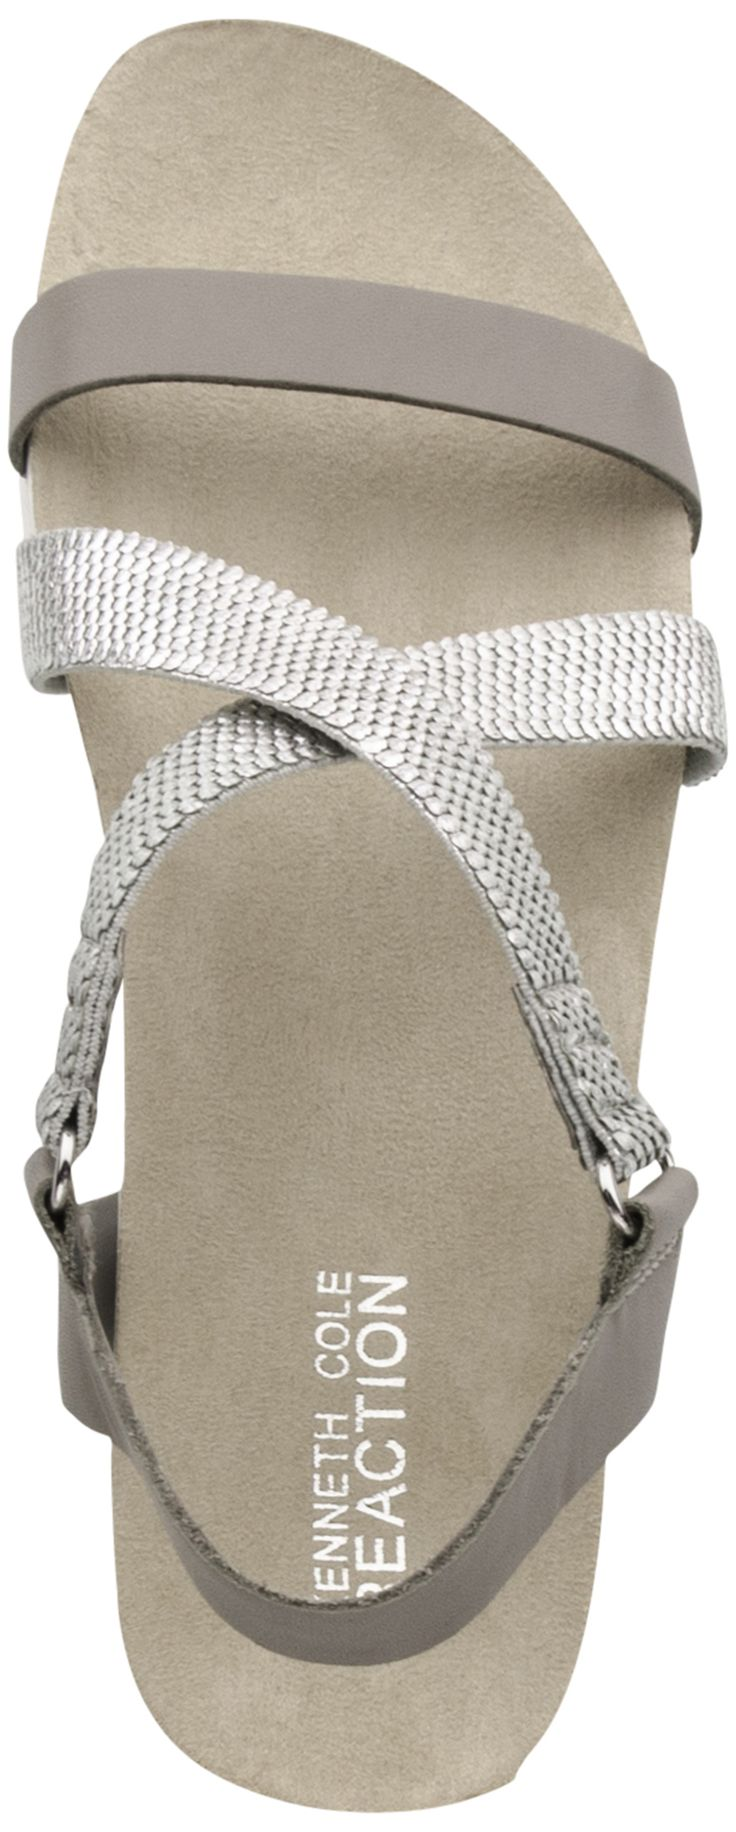 Kenneth Cole Reaction Surf Board sandal (Tan/Gold)